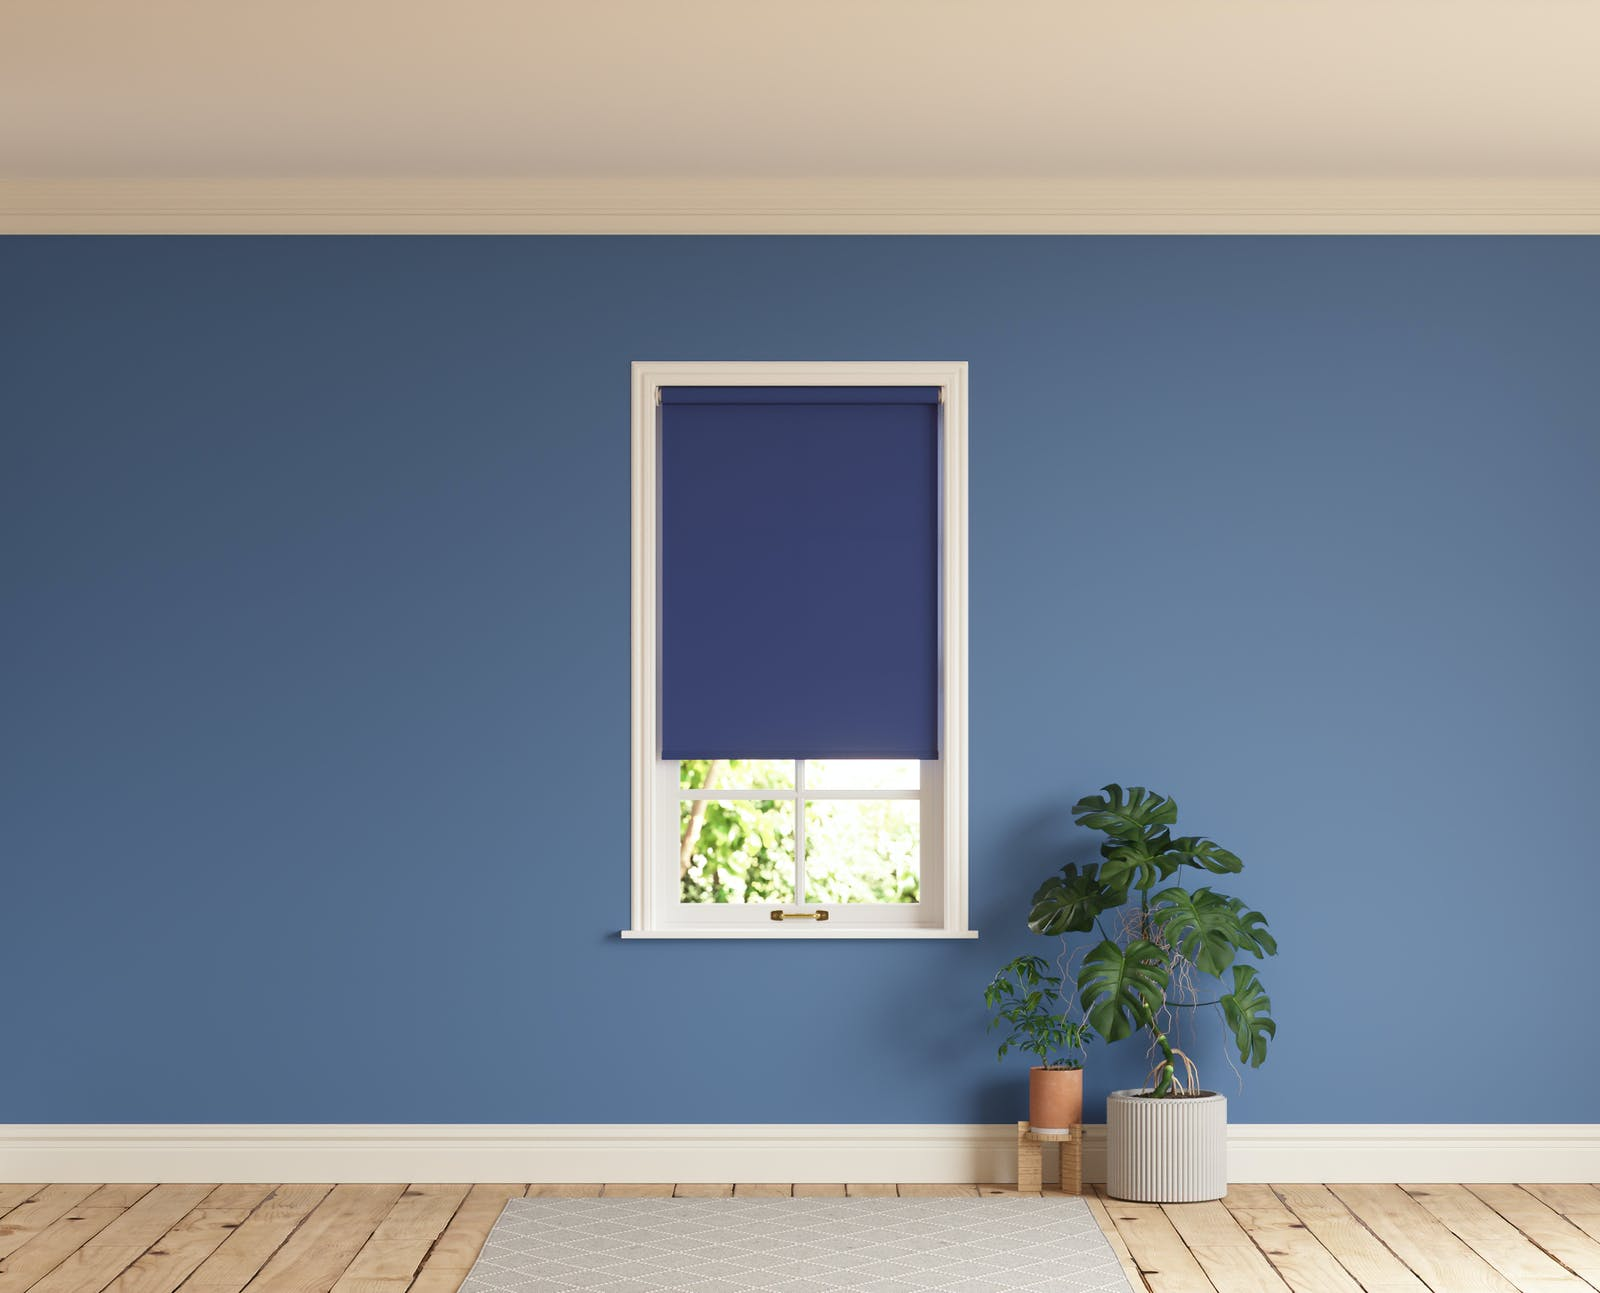 Room with walls painted in Lick Purple 02 and Blue 08 roller blinds